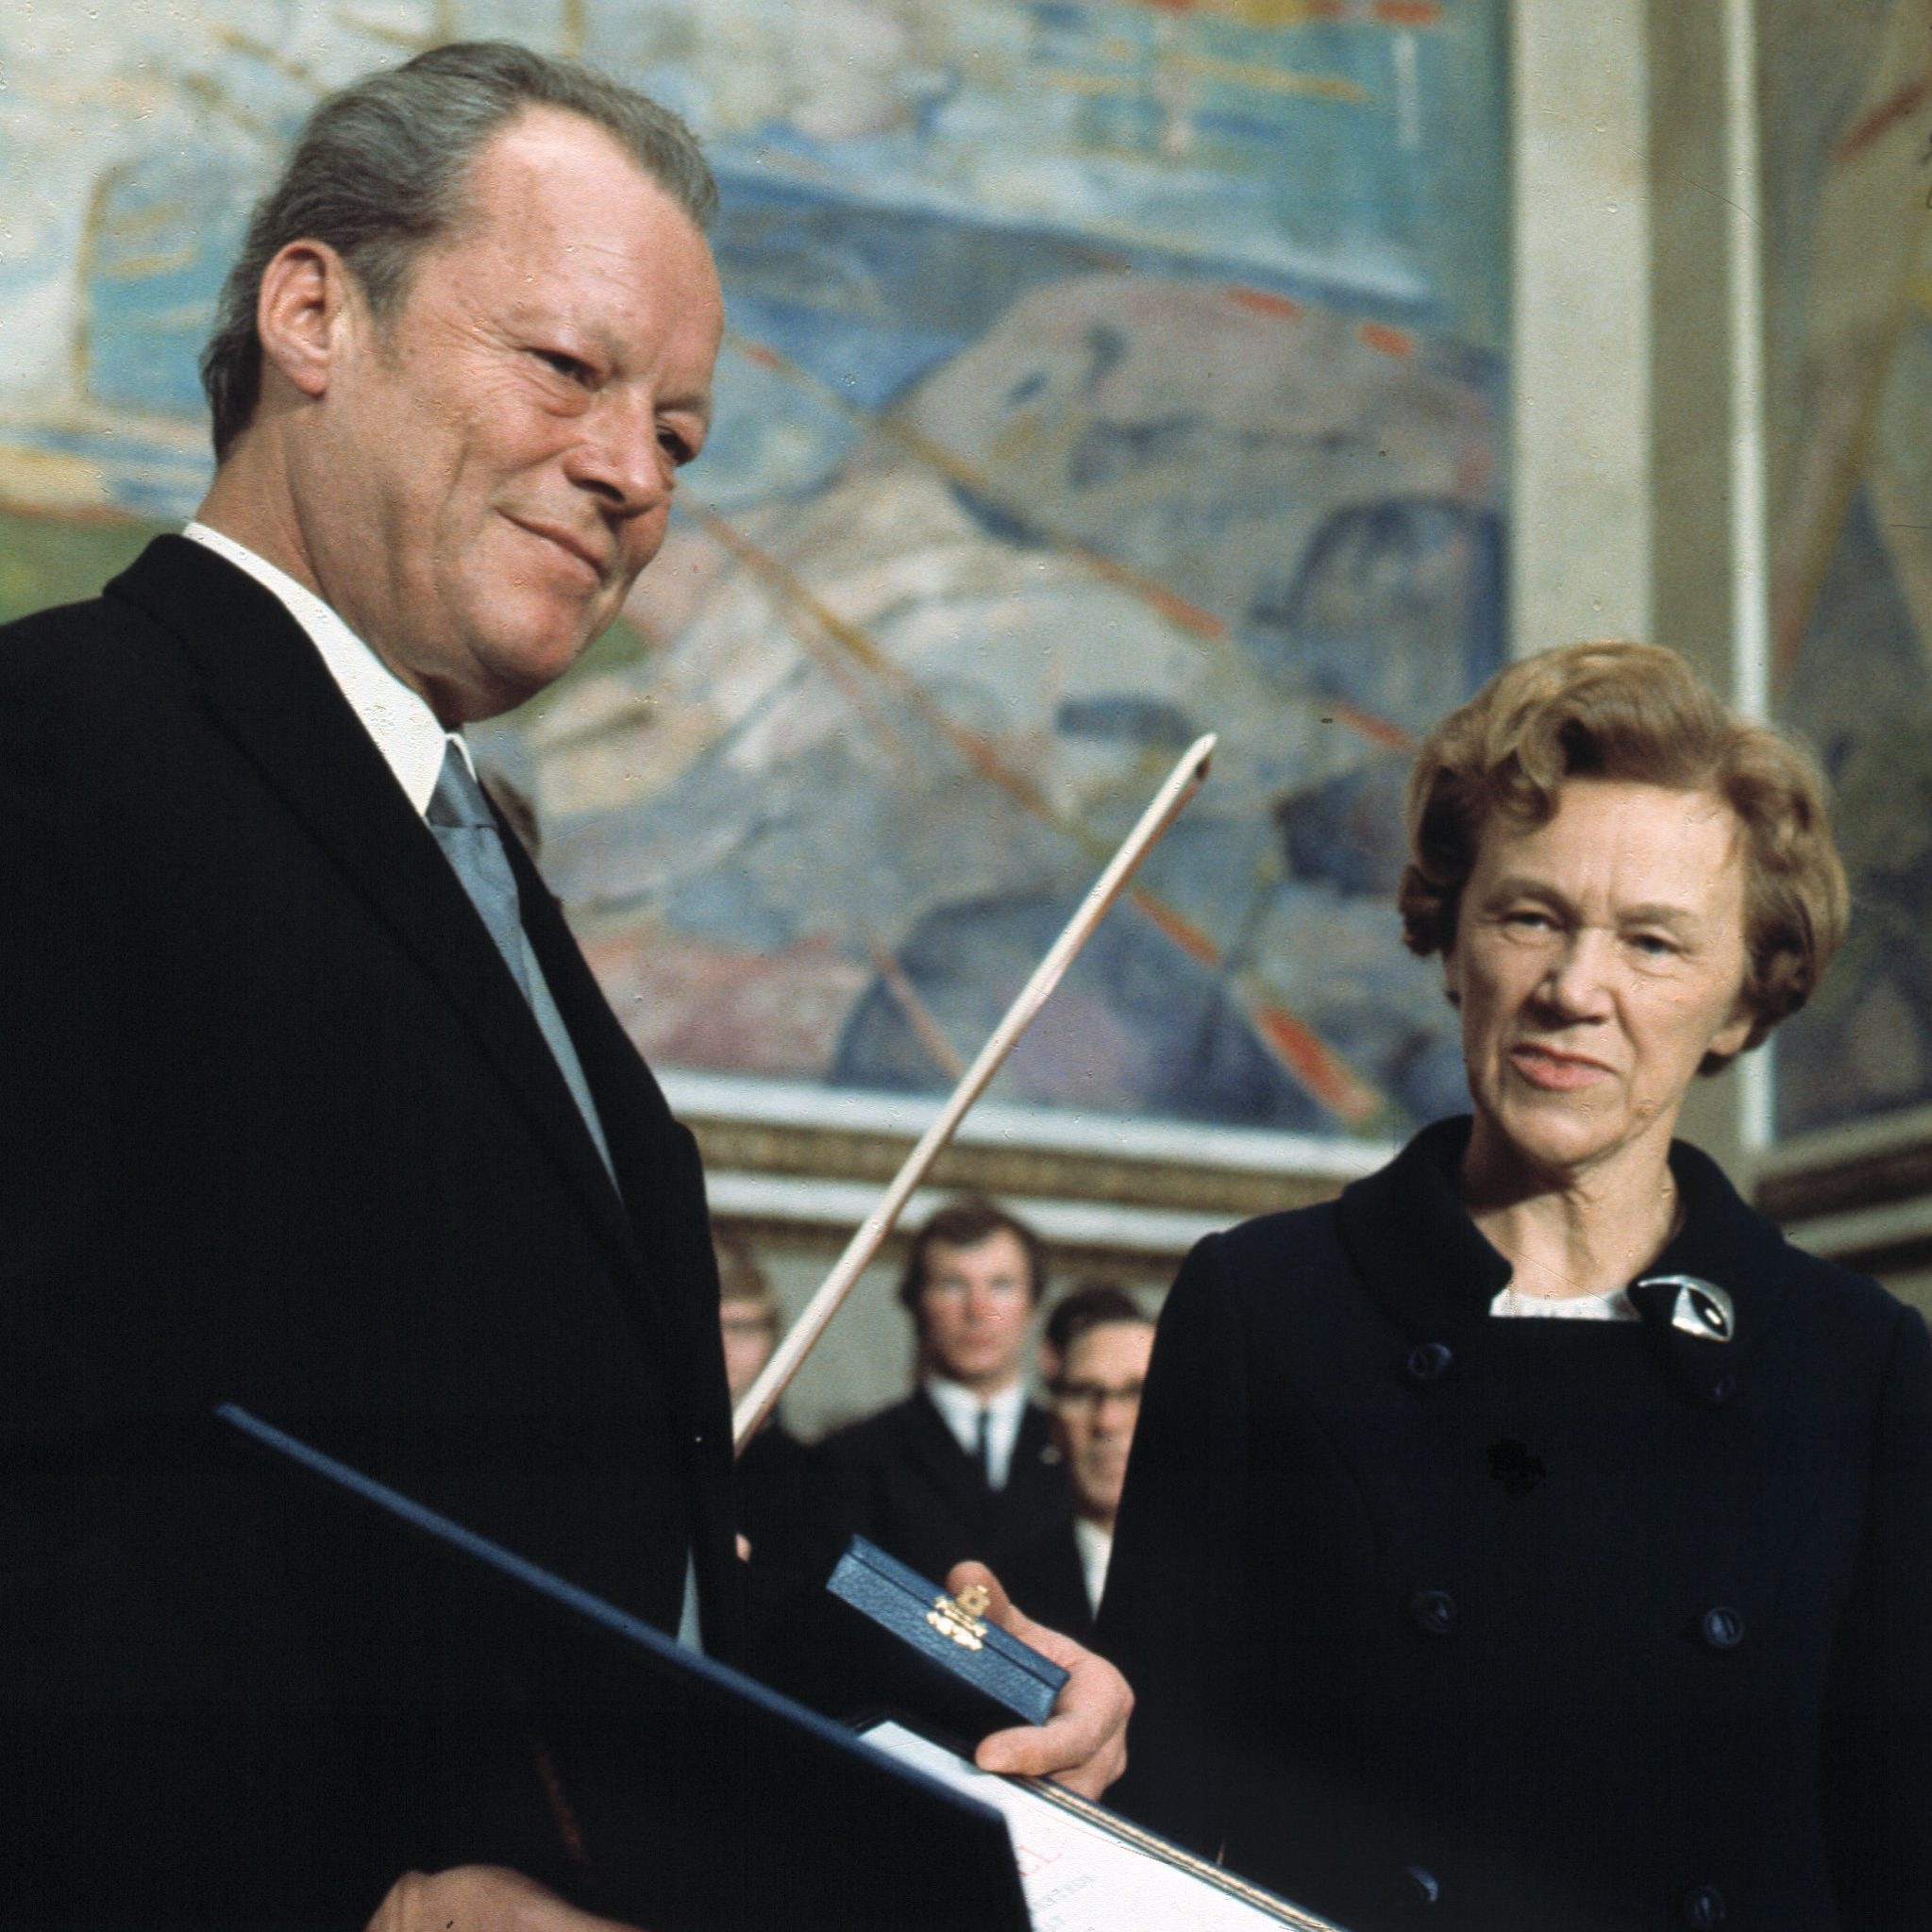 West German Chancellor Willy Brandt accepting the Nobel Peace Prize in 1971